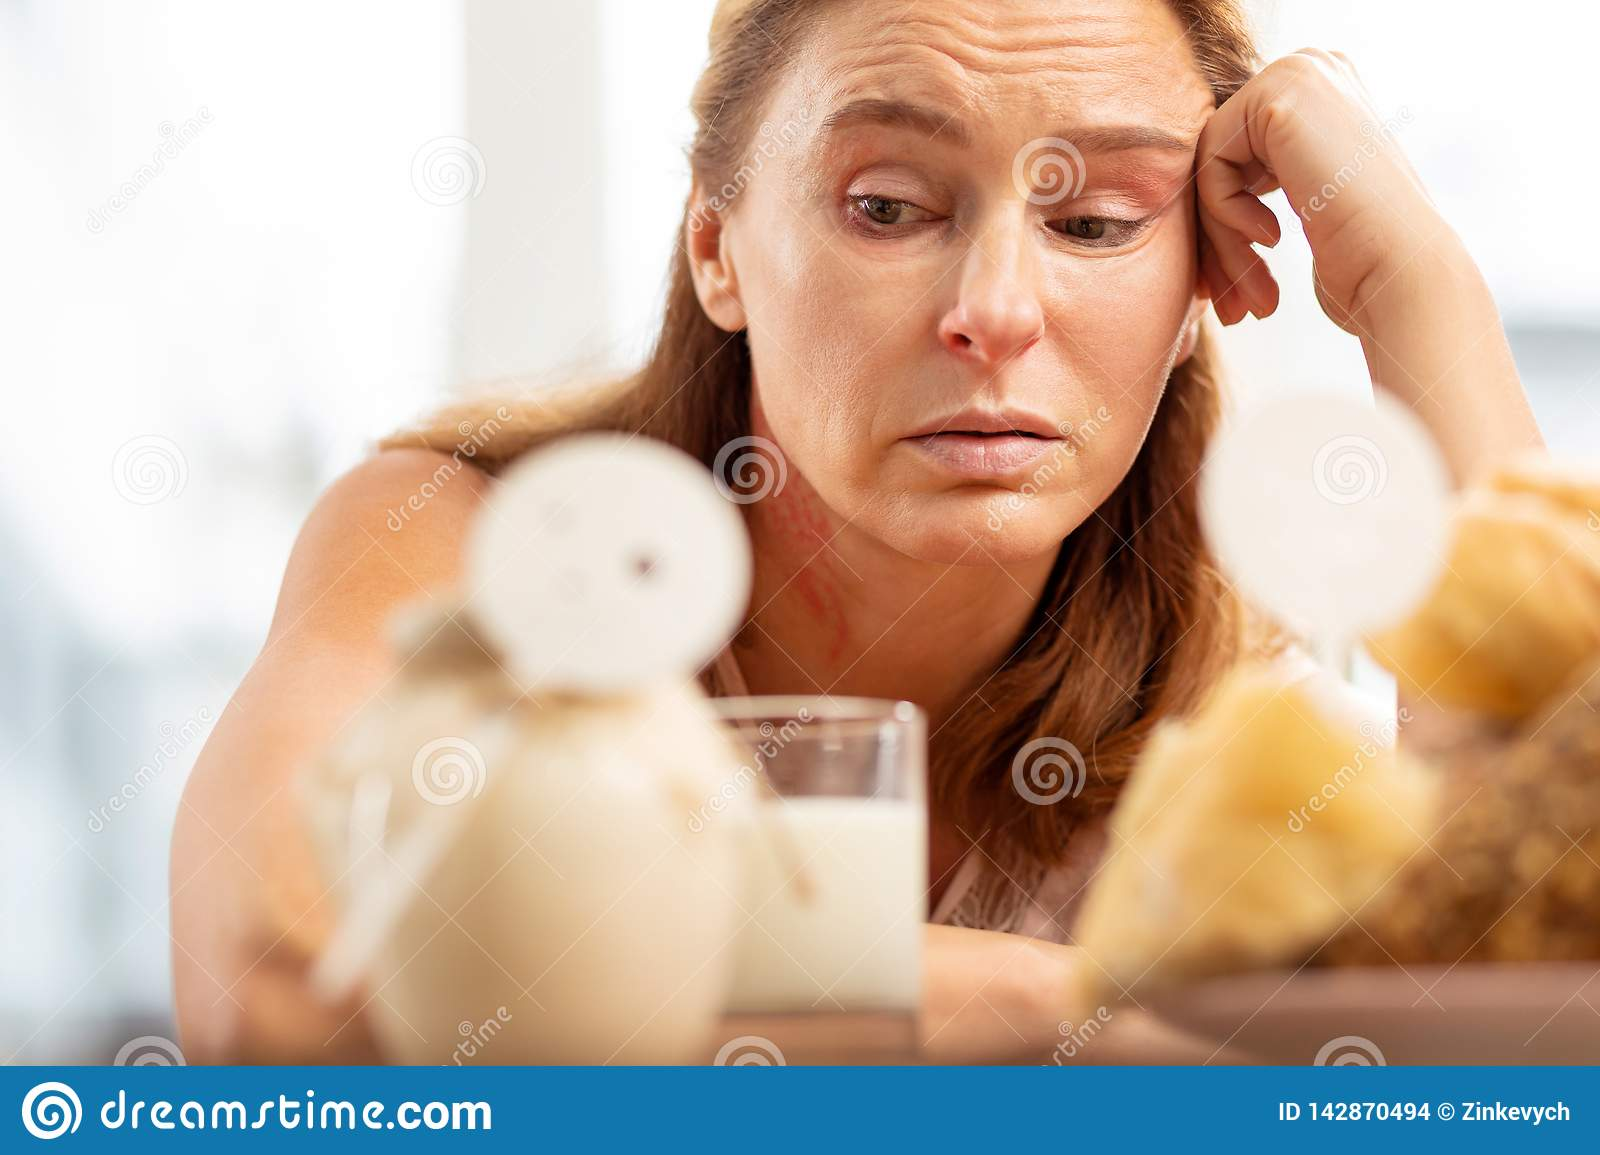 Close up of mature woman with facial wrinkles having food allergy